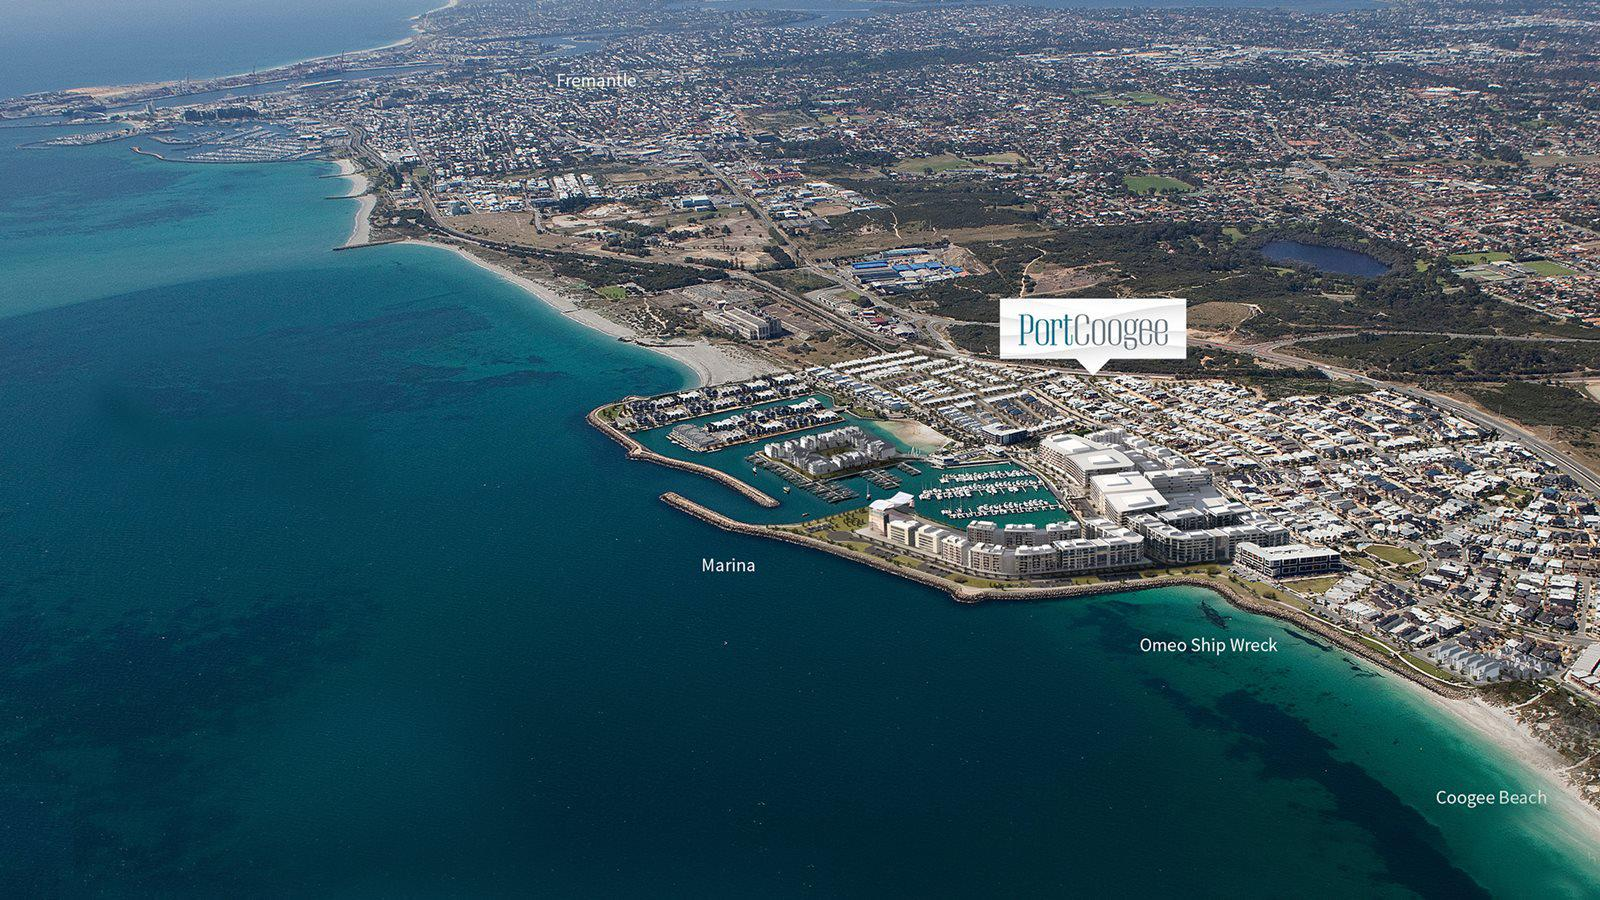 Port-Coogee_Explore_Aerial-Map-1_Frasers-Property.jpg